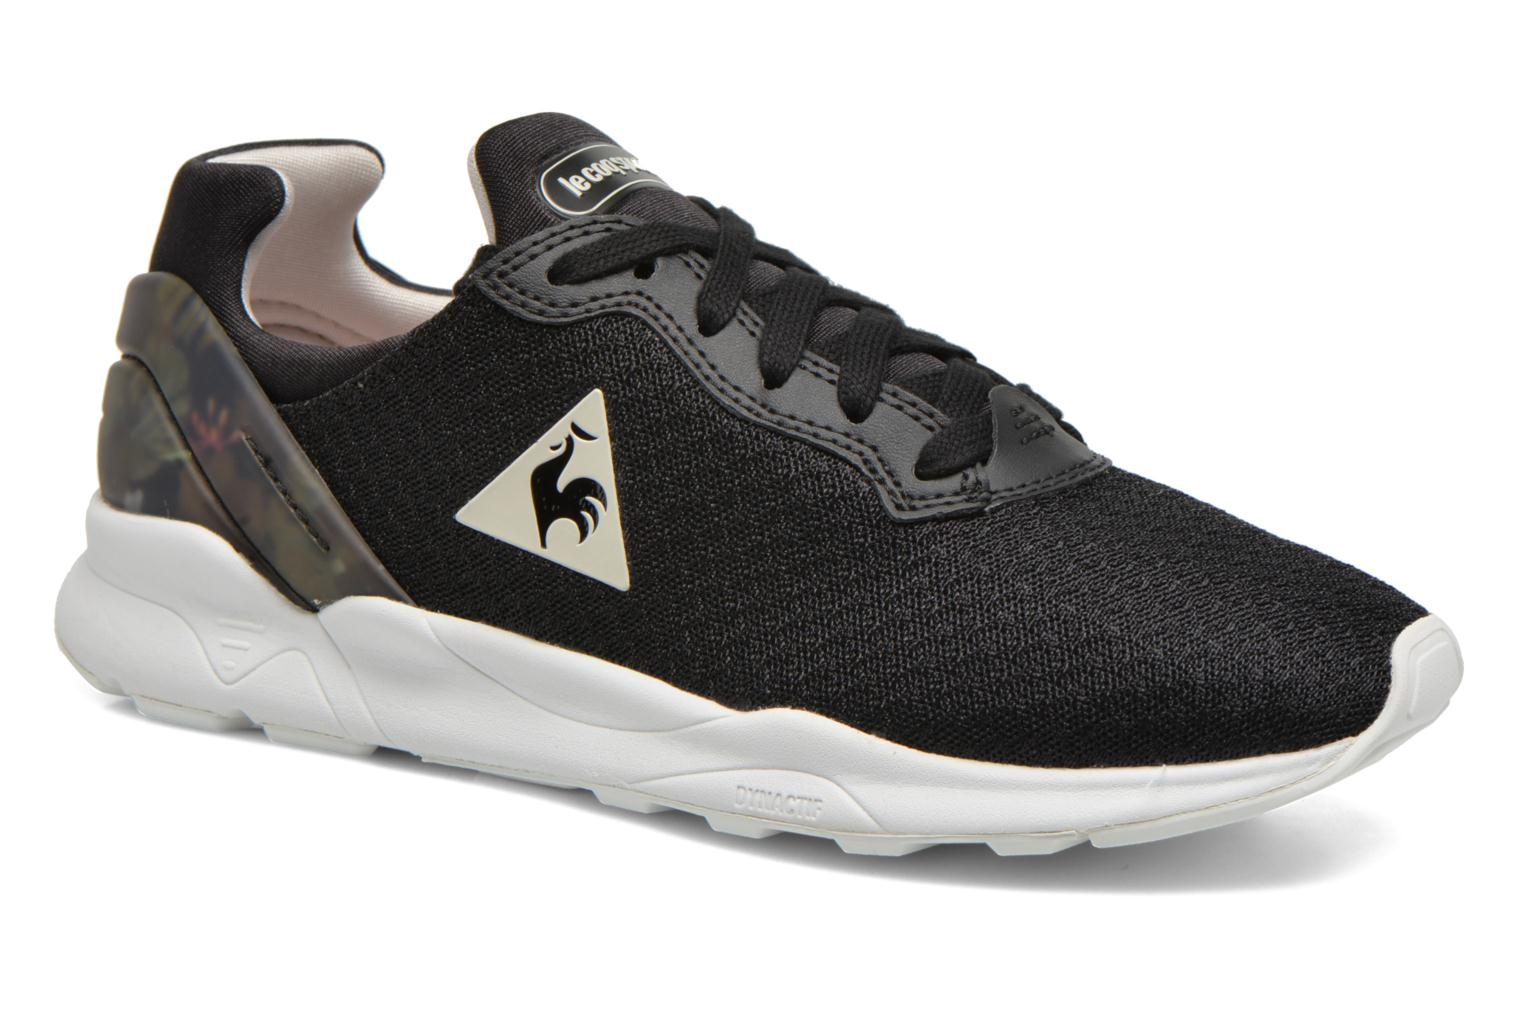 LCS R XVI Winter Floral, Womens Trainers Le Coq Sportif